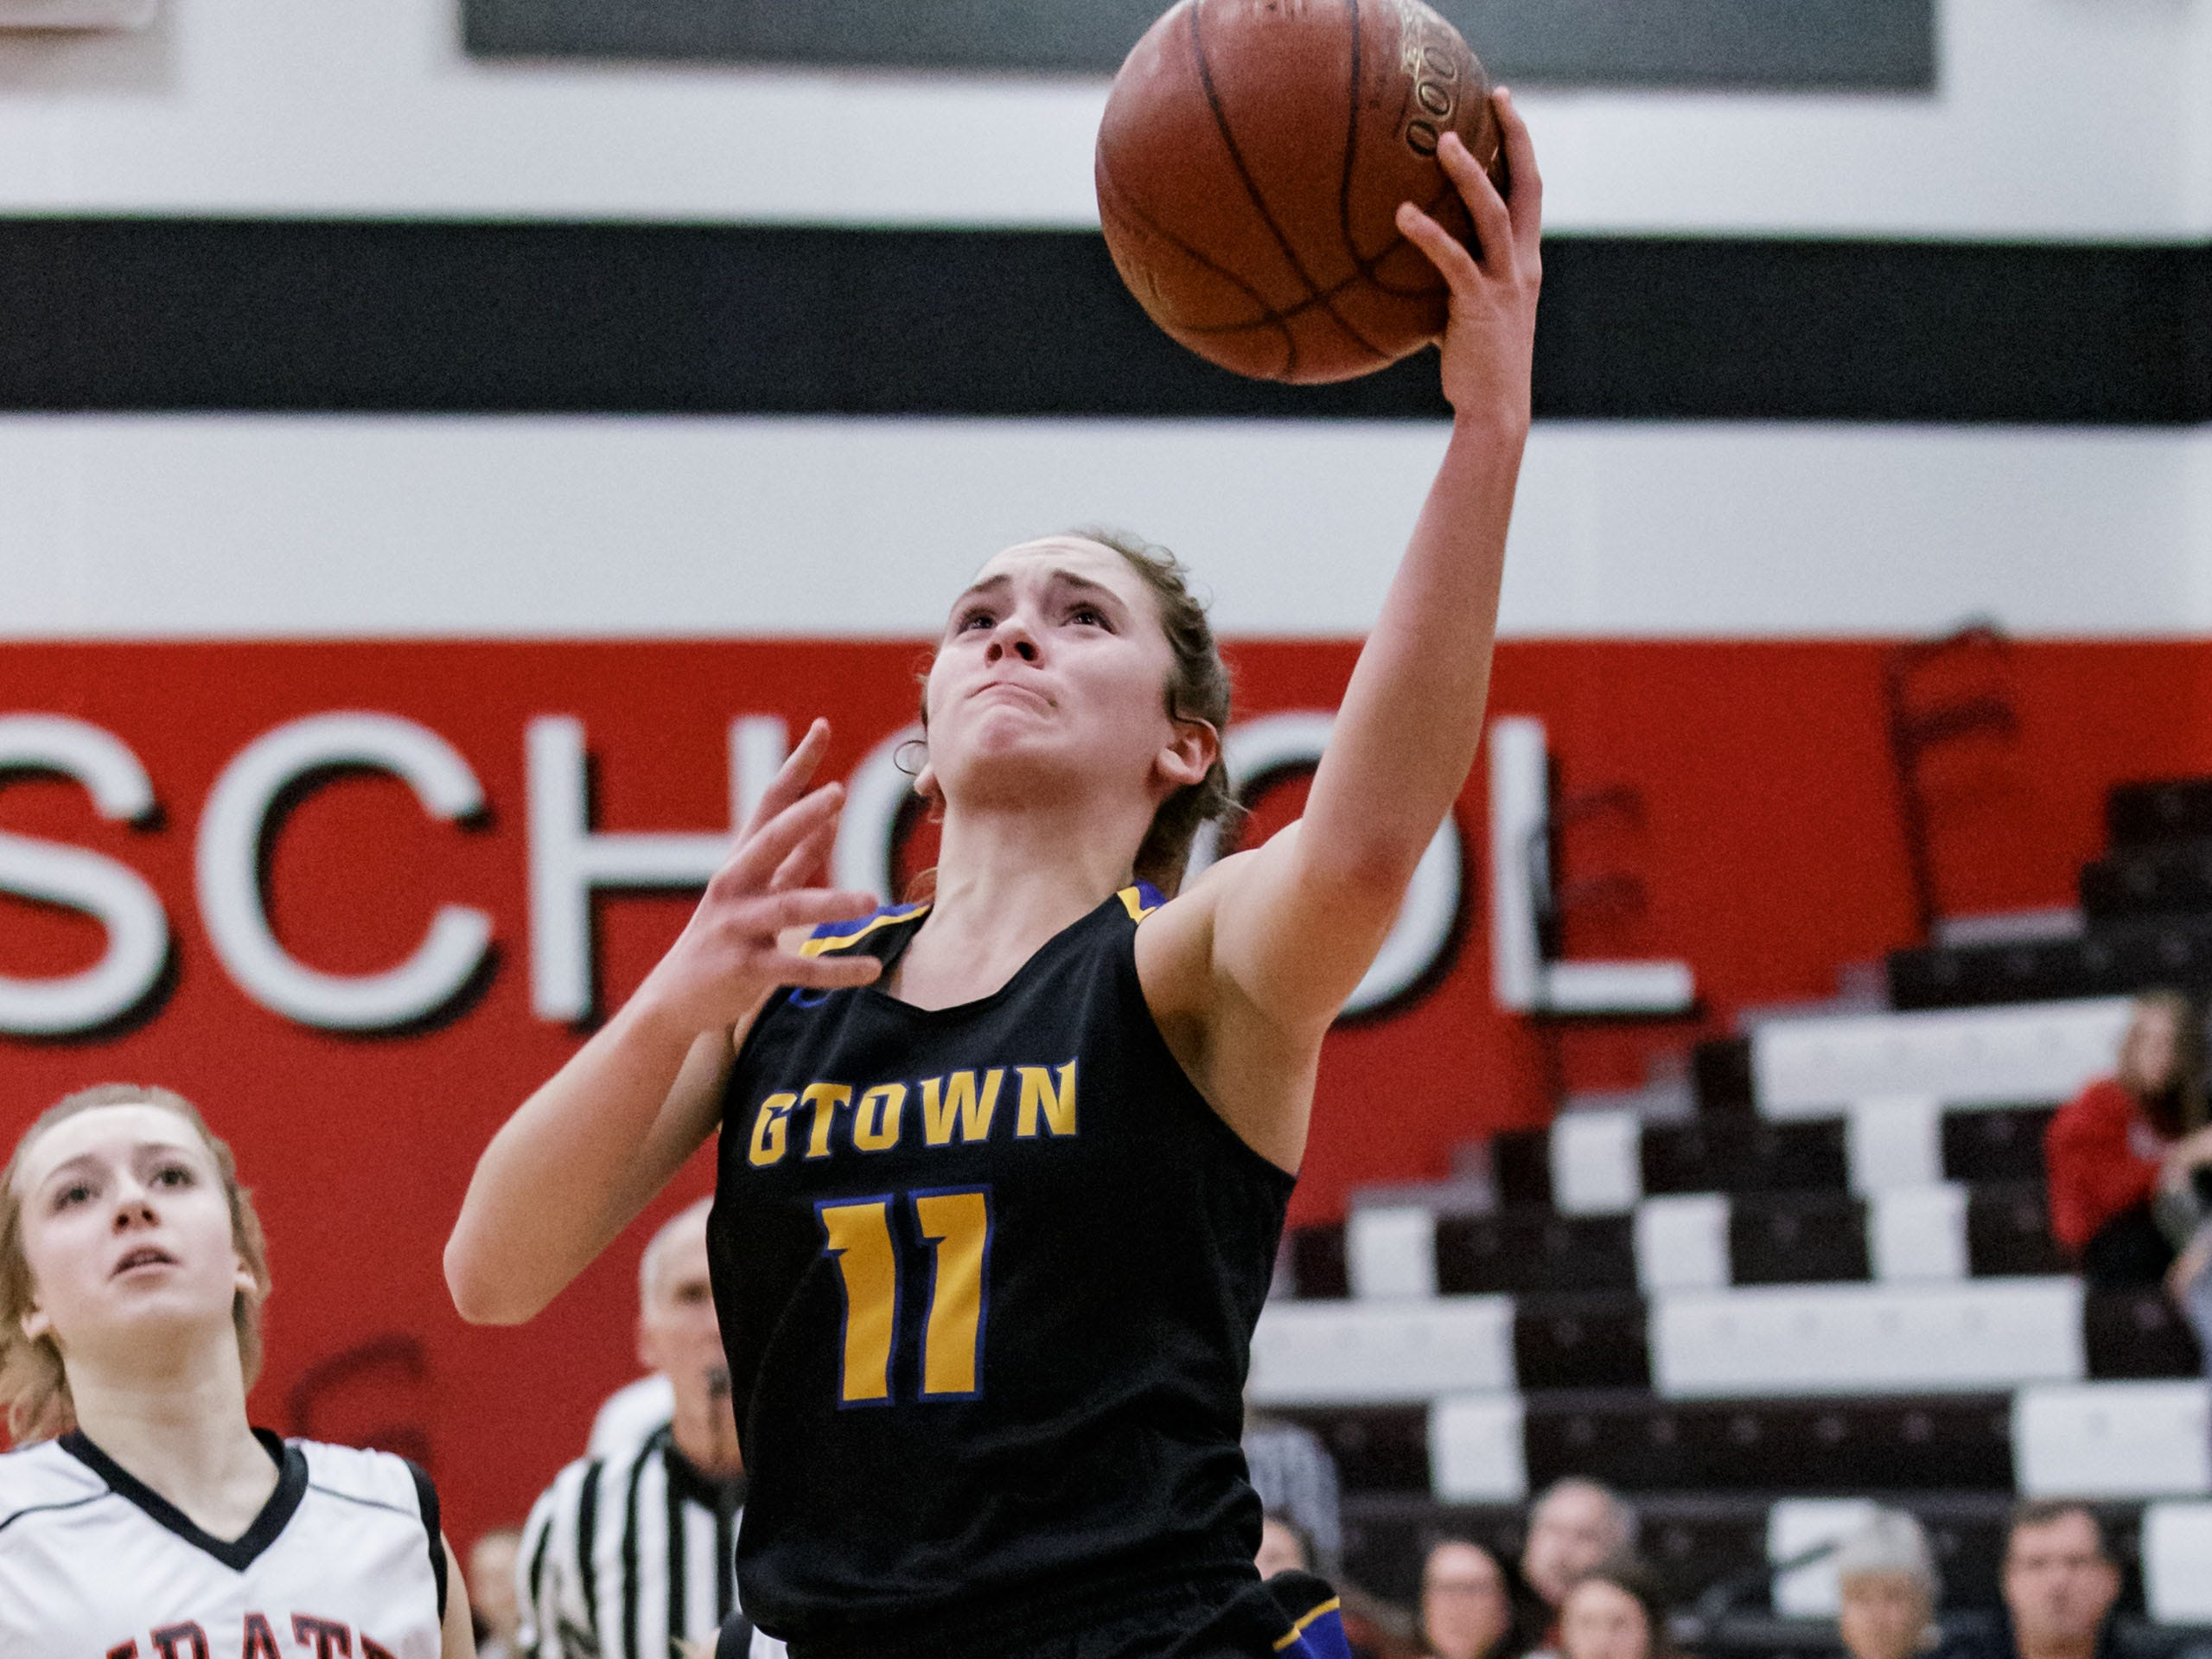 Germantown junior Natalie McNeal (11) drives in for a layup during the game at Pewaukee on Tuesday, Nov. 27, 2018.